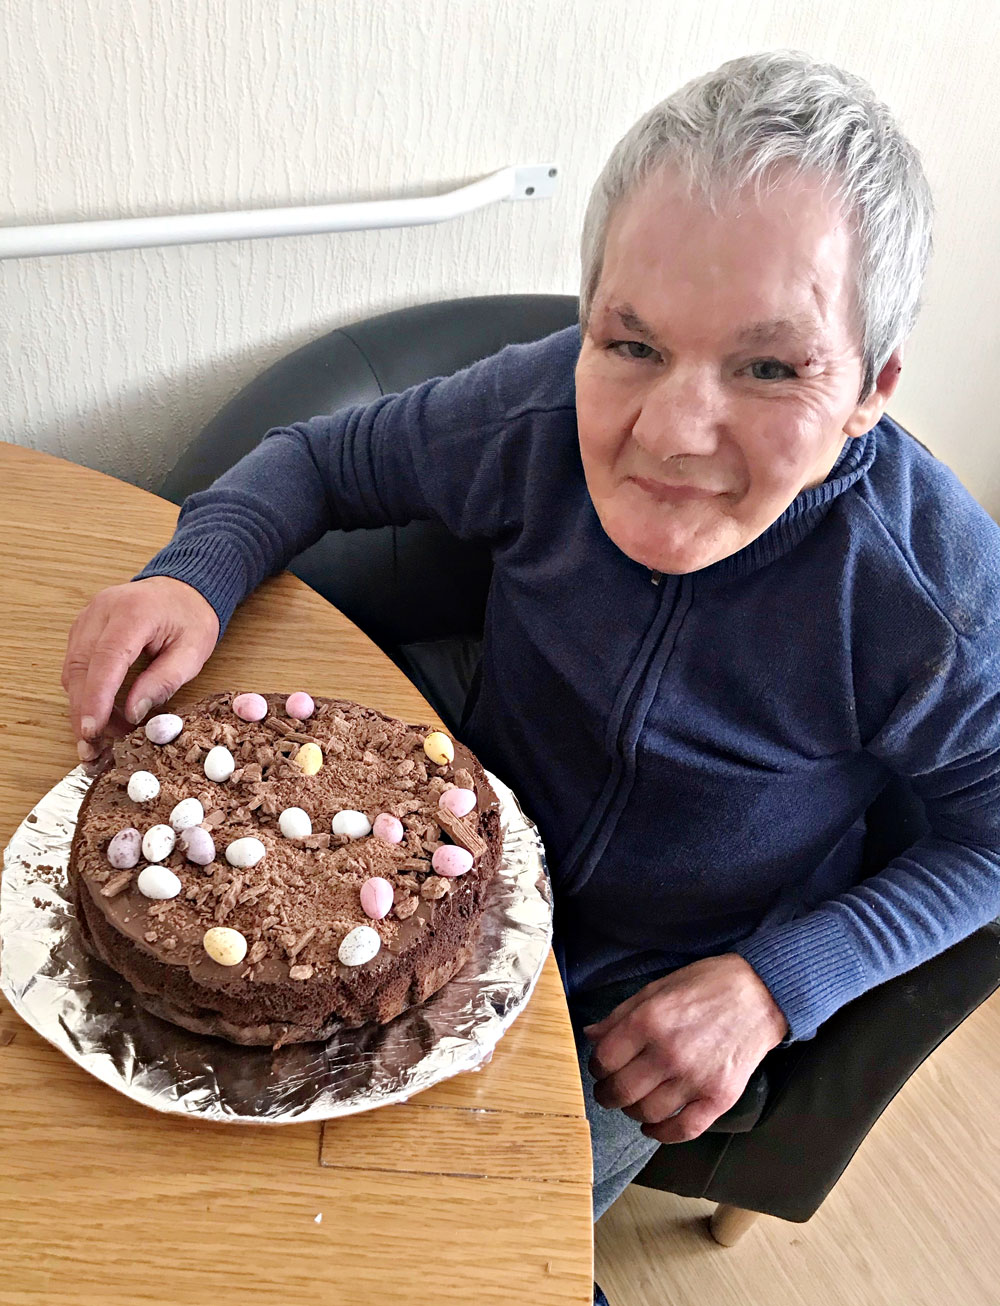 Ian sitting at a table with his finished cake on a silver paper tray.